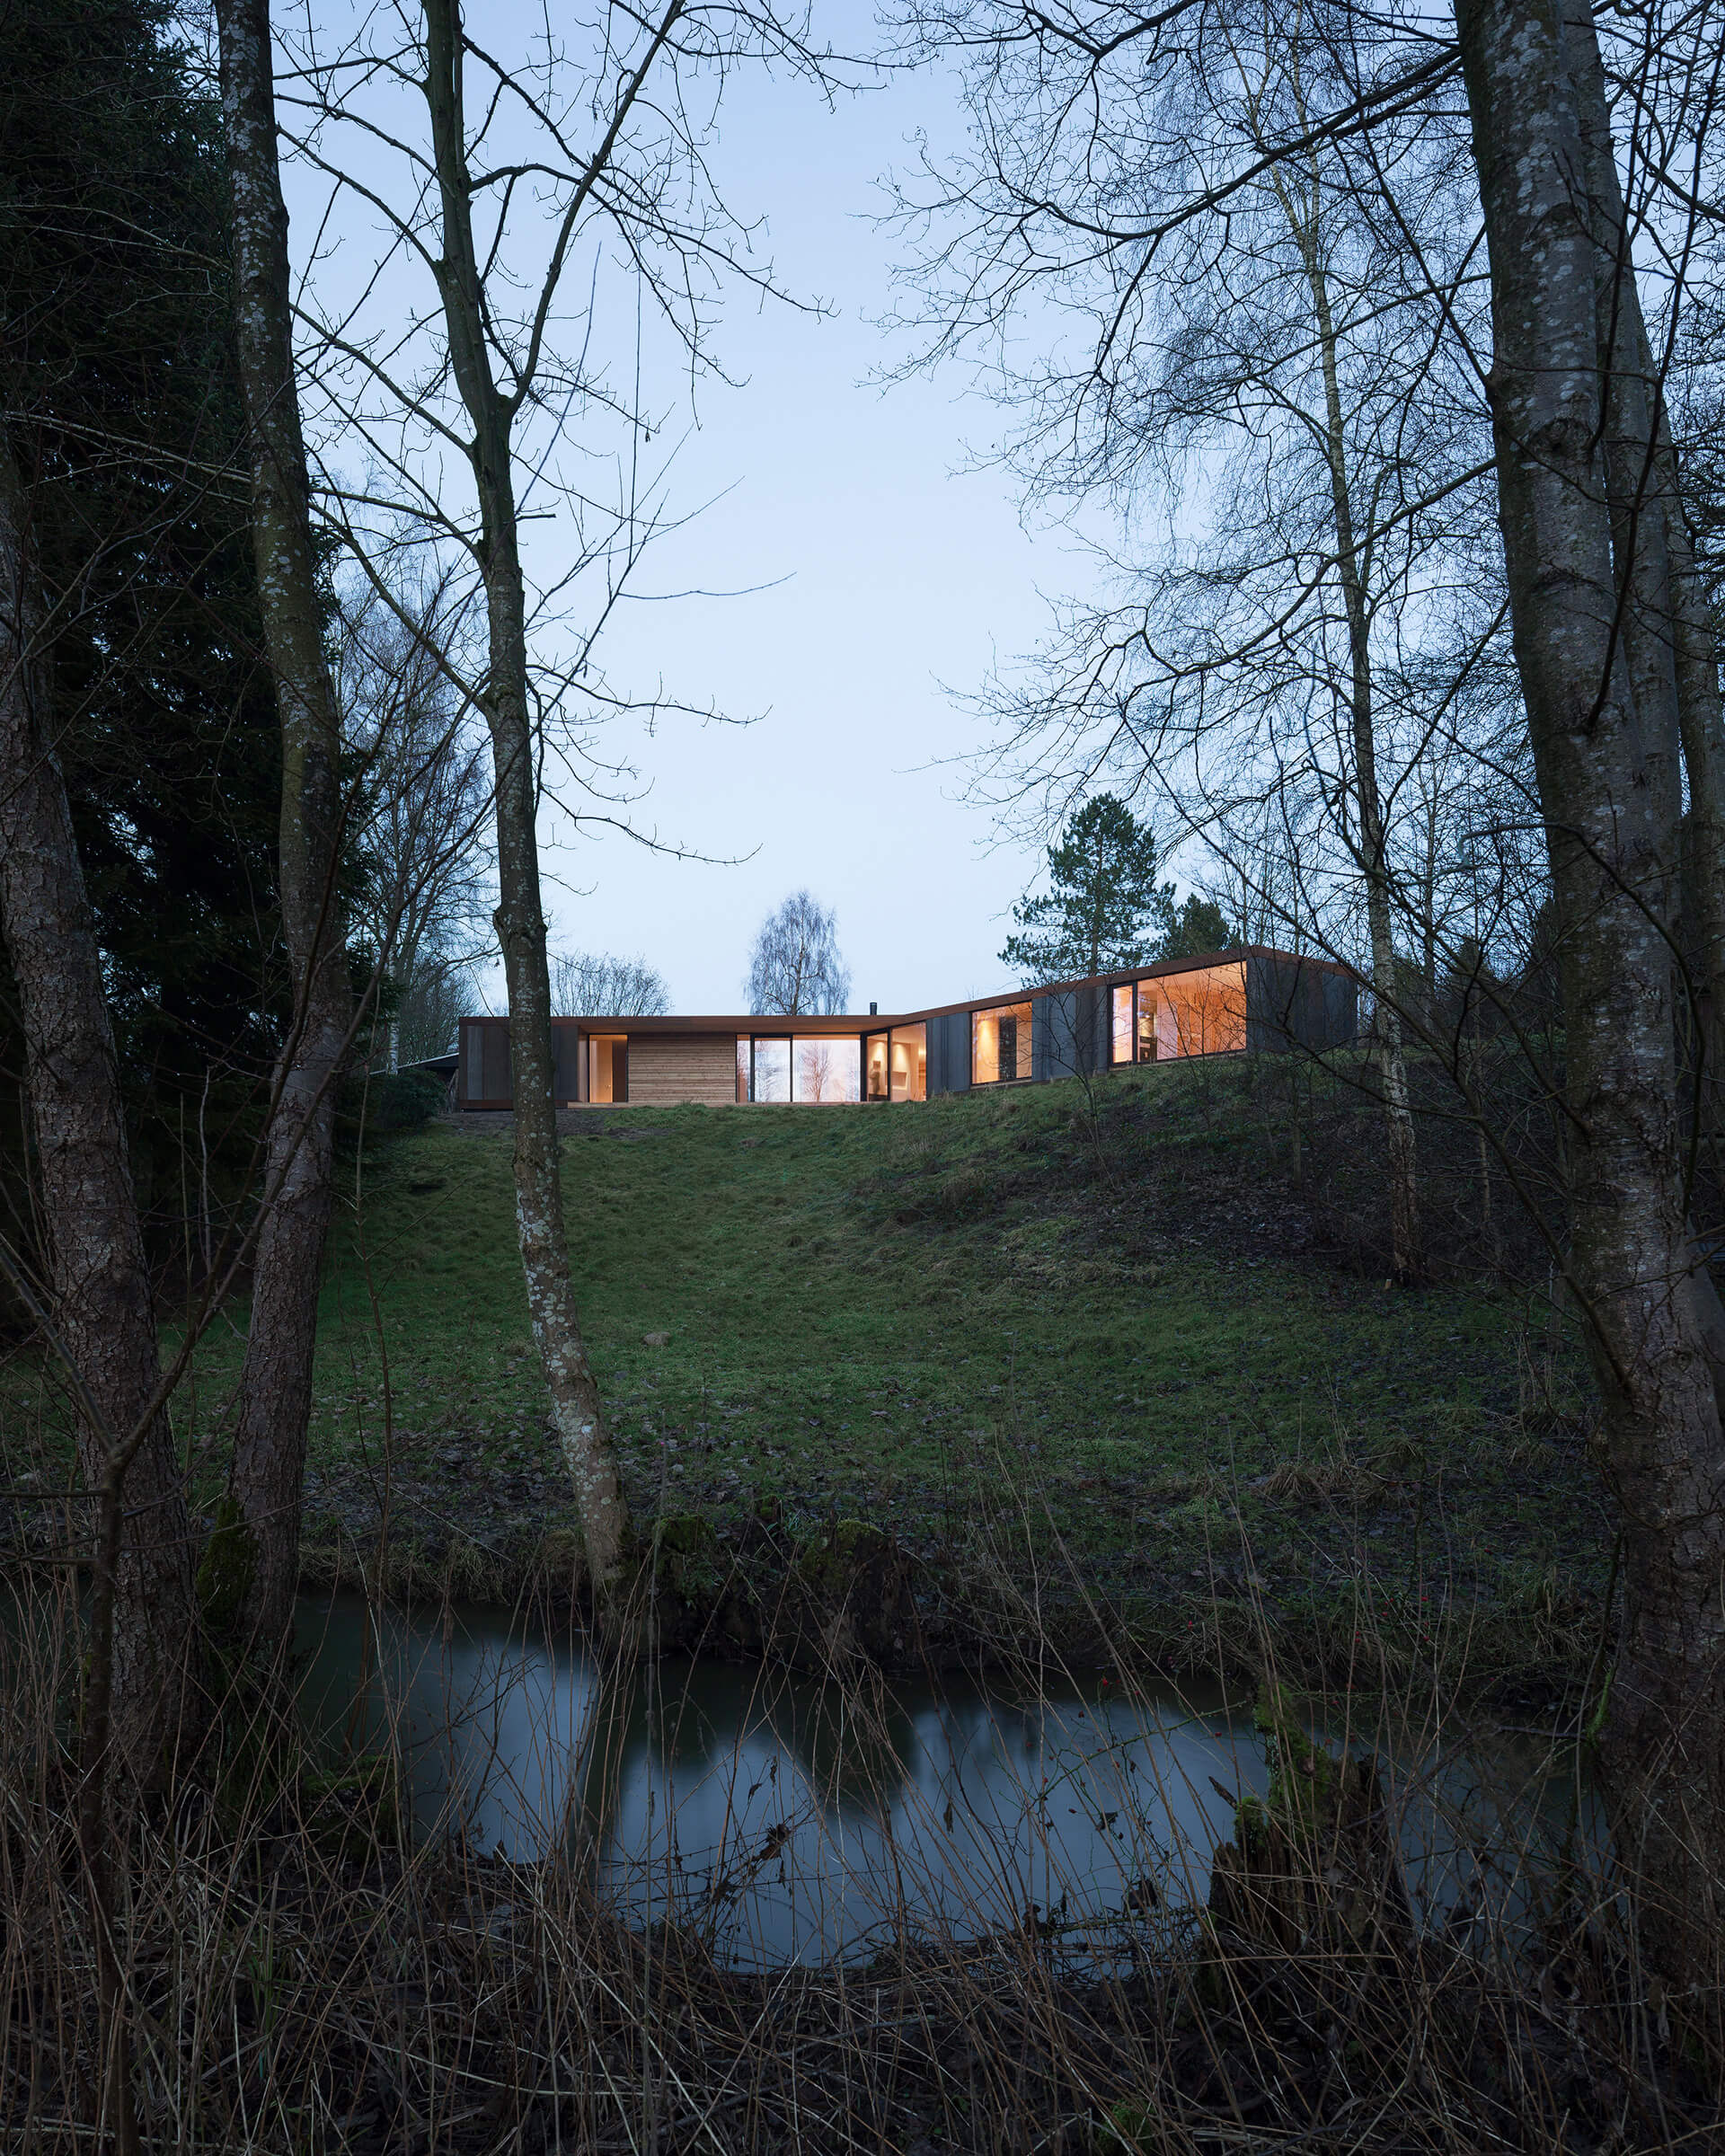 The prefab home Villa Korup rests upon Danish landscape with lofty trees for company | Villa Korup designed by Jan Henrik Jansen Arkitekter with Marshall Blecher | STIRworld